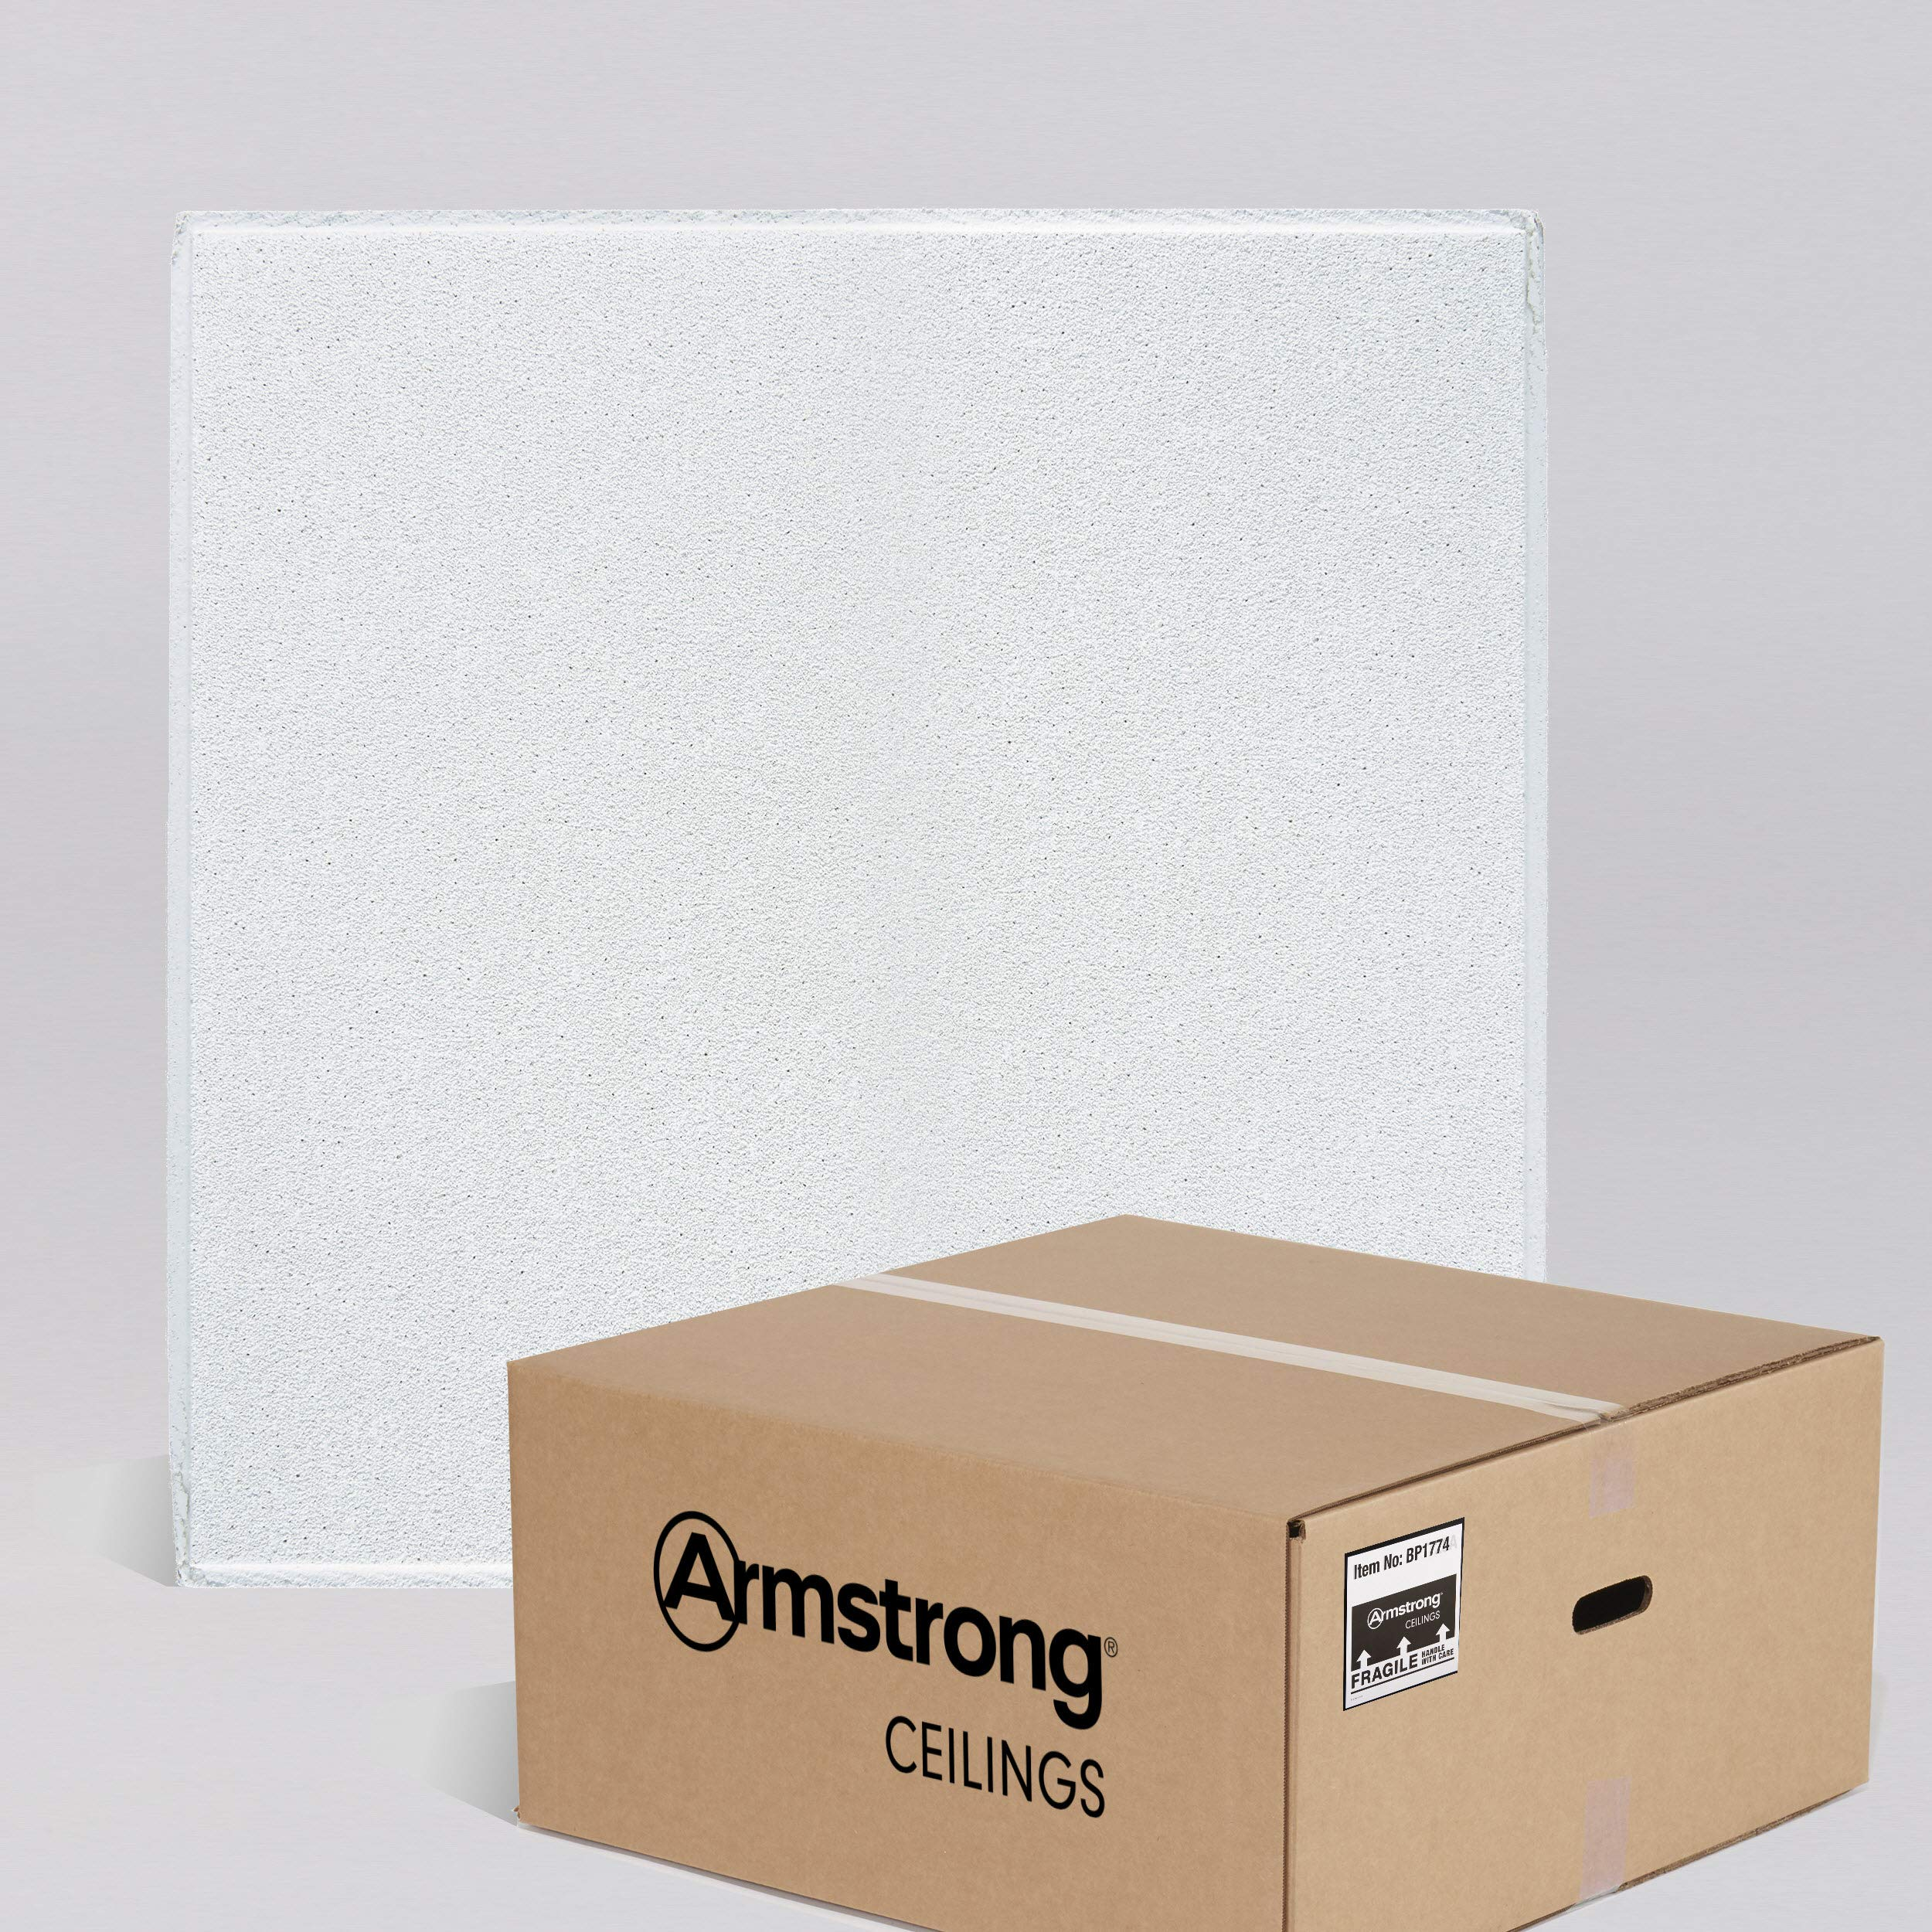 Armstrong Ceiling Tiles; 2x2 Ceiling Tiles - HUMIGUARD Plus Acoustic Ceilings for Suspended Ceiling Grid; Drop Ceiling Tiles Direct from the Manufacturer; DUNE Item 1774 - 16pcs White Tegular by Armstrong